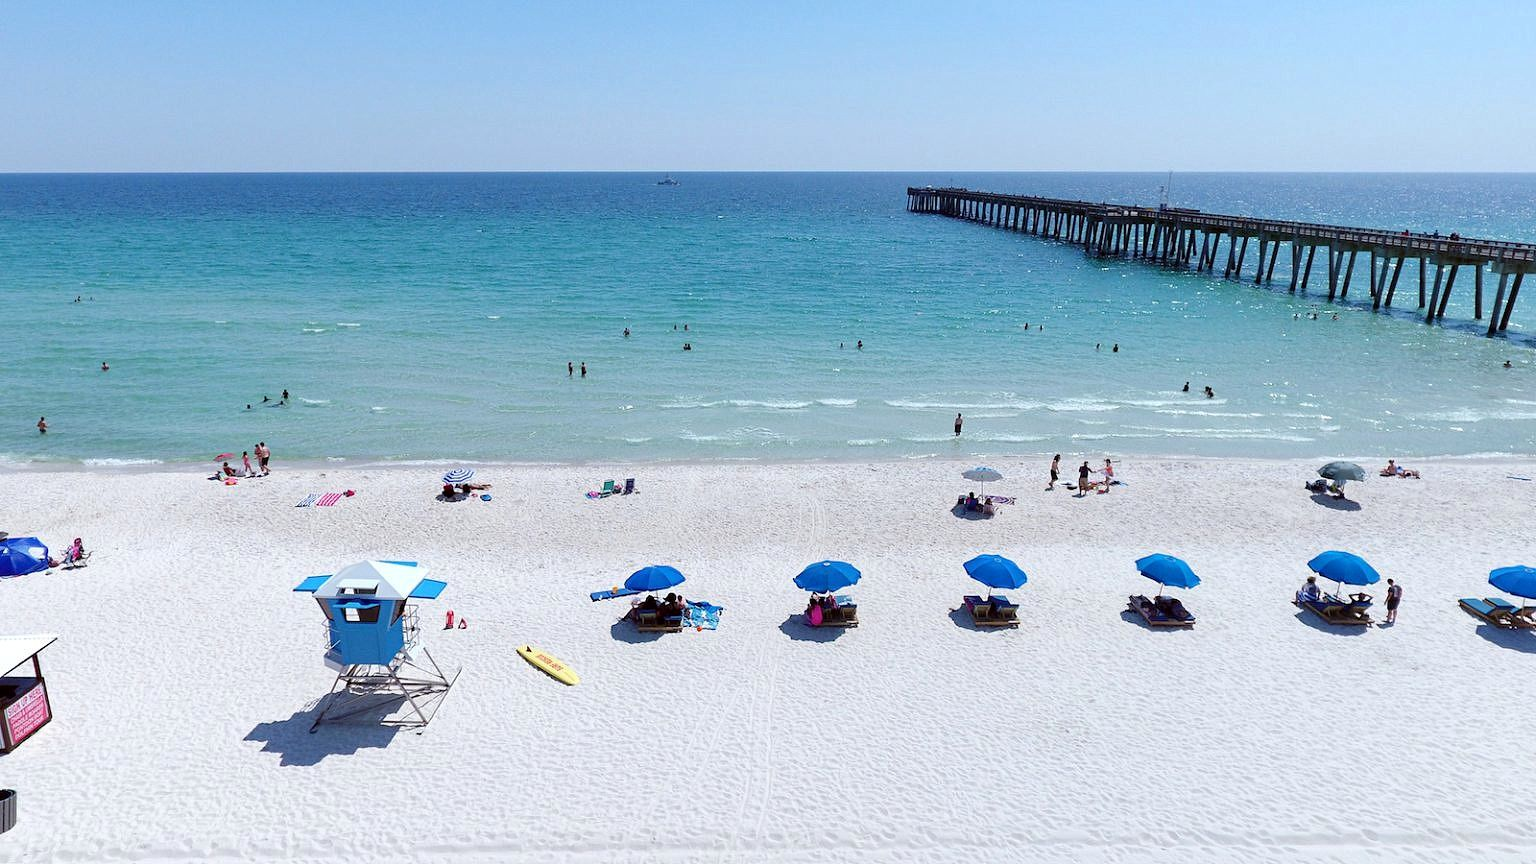 White Sand Clear Waters 72 Hours In Panama City Beach In 2021 Panama City Panama City Beach Panama City Beach